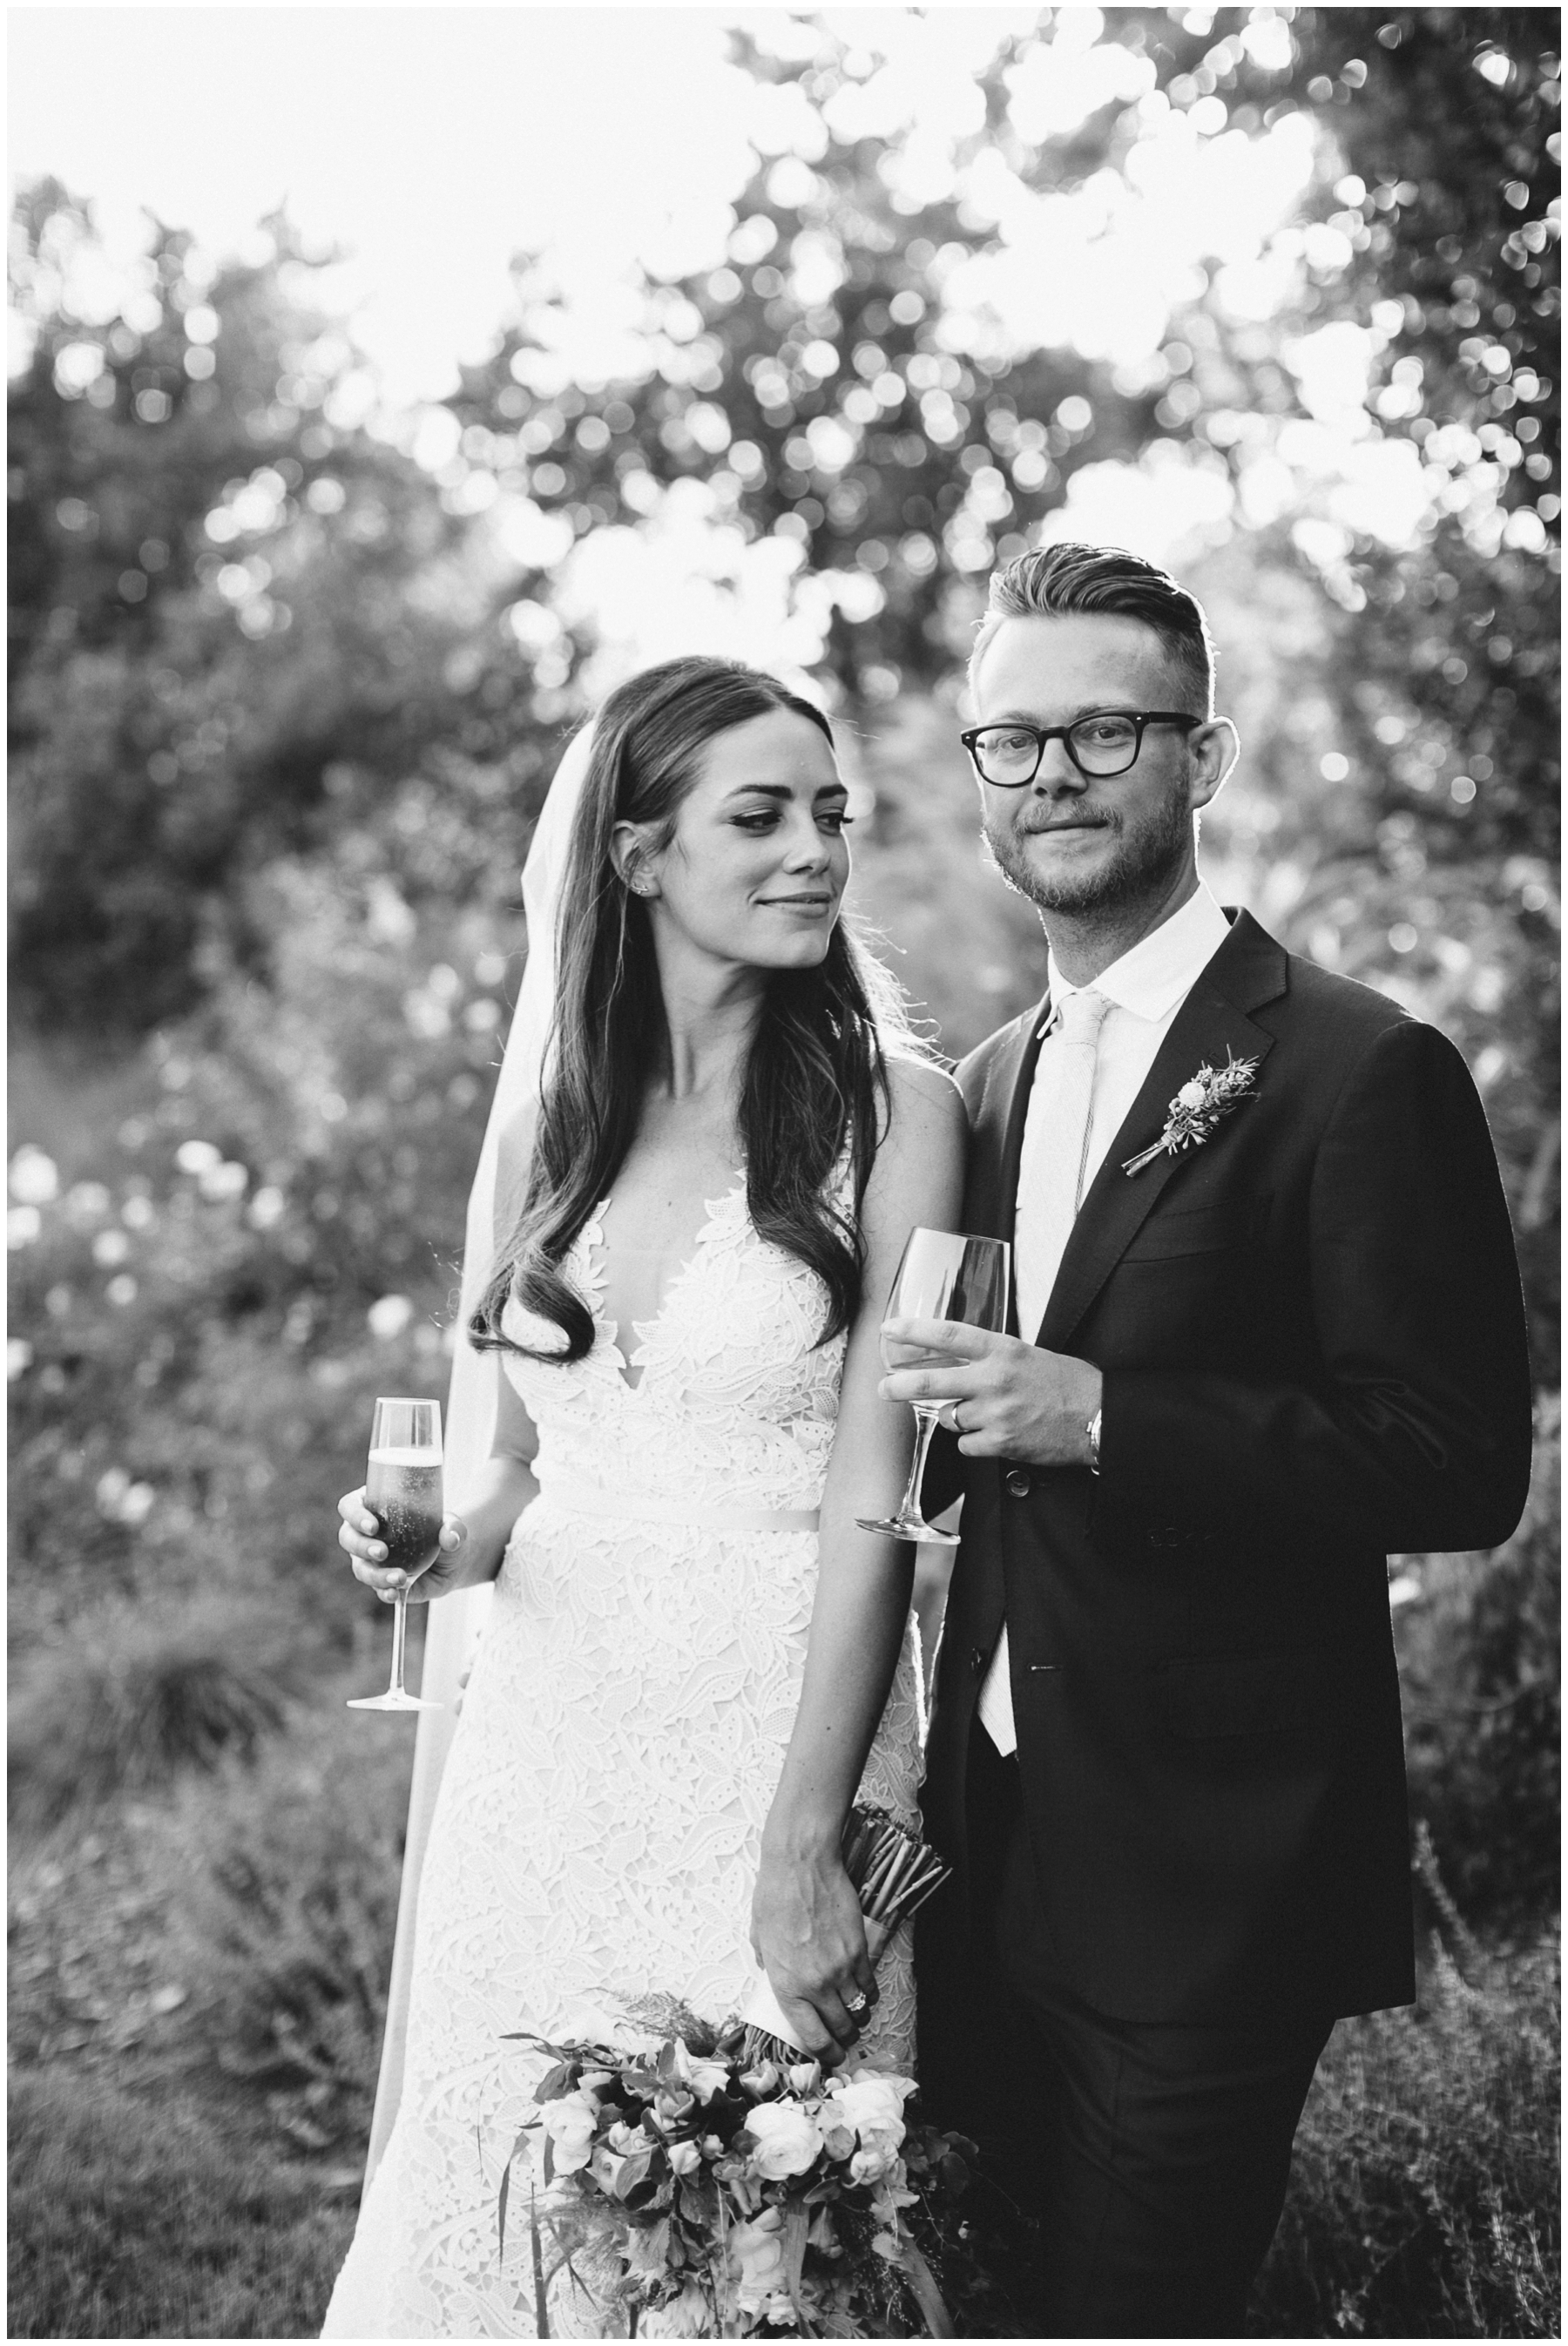 Megan+James-KELLYBOITANO-Solage_Wedding_0052